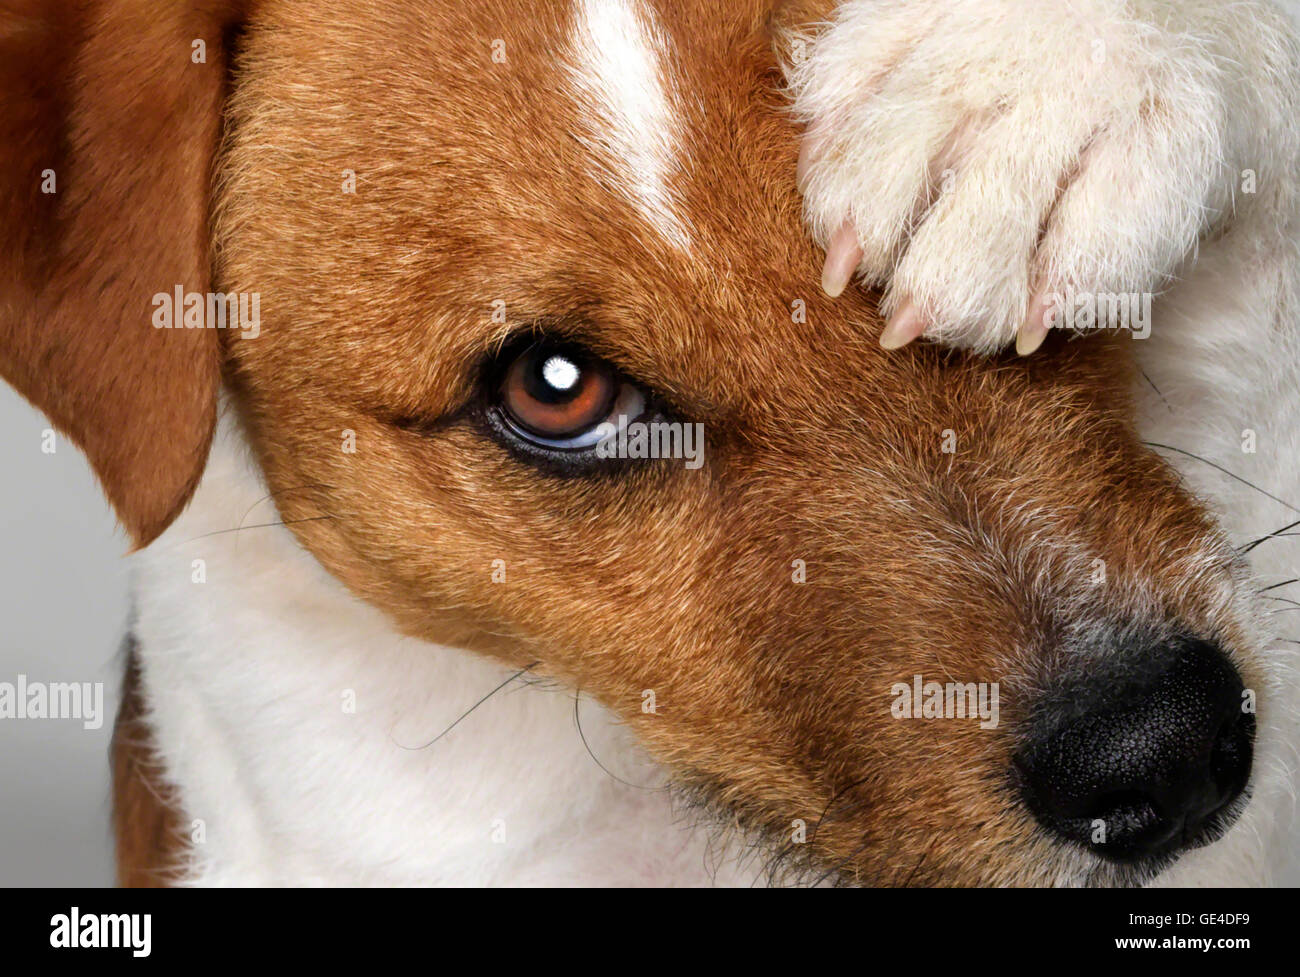 Jack Russell Terrier closeup, looking into camera with one paw covering one eye. - Stock Image